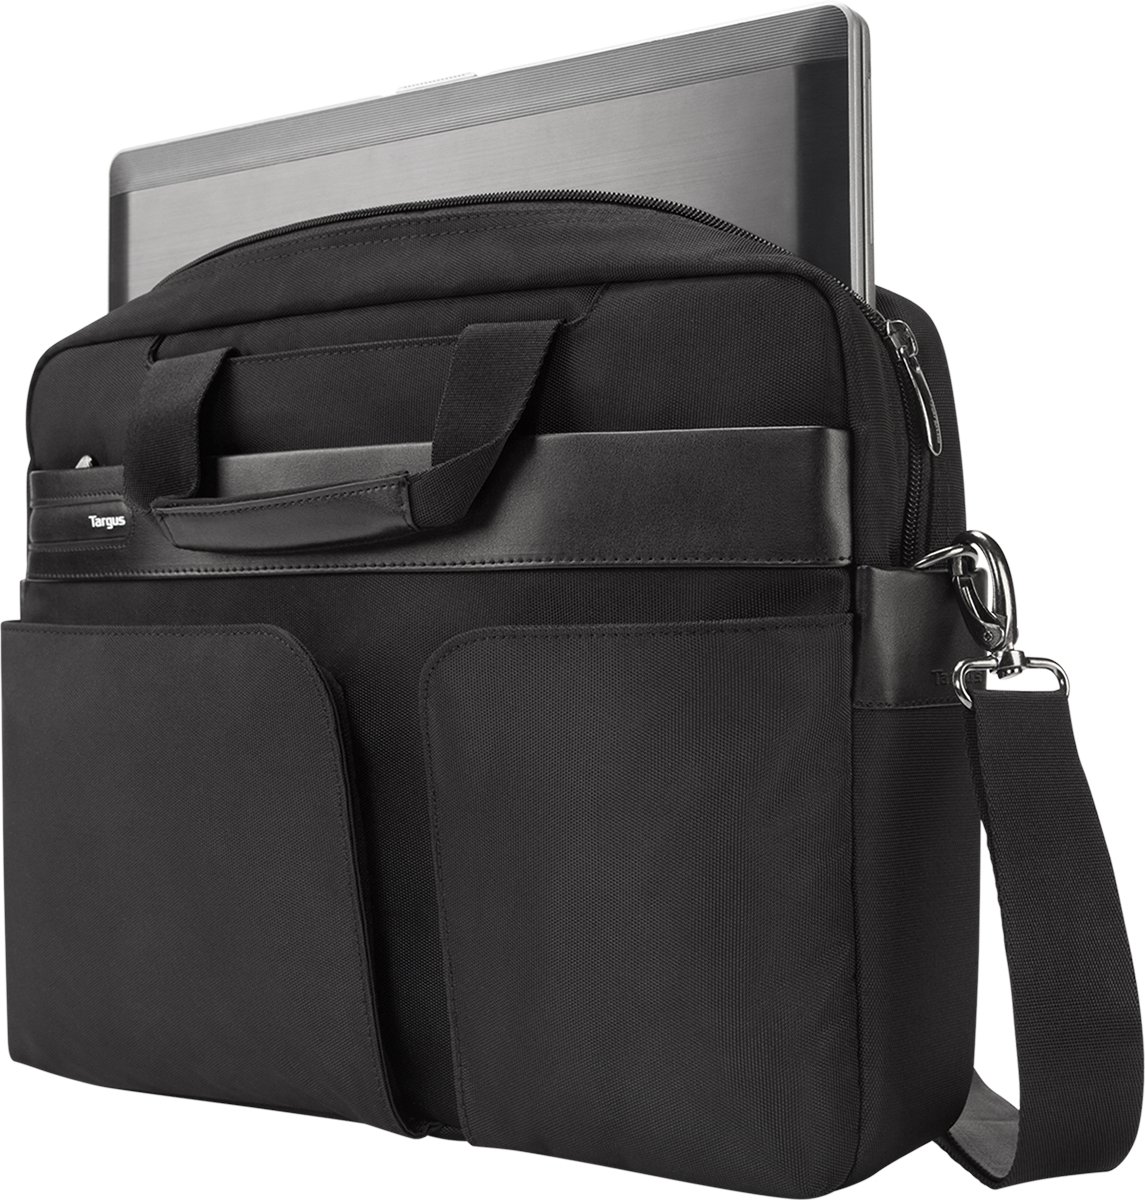 Targus Lomax Ultra Thin Top Load Bag for 15.6 Laptops TBT241US